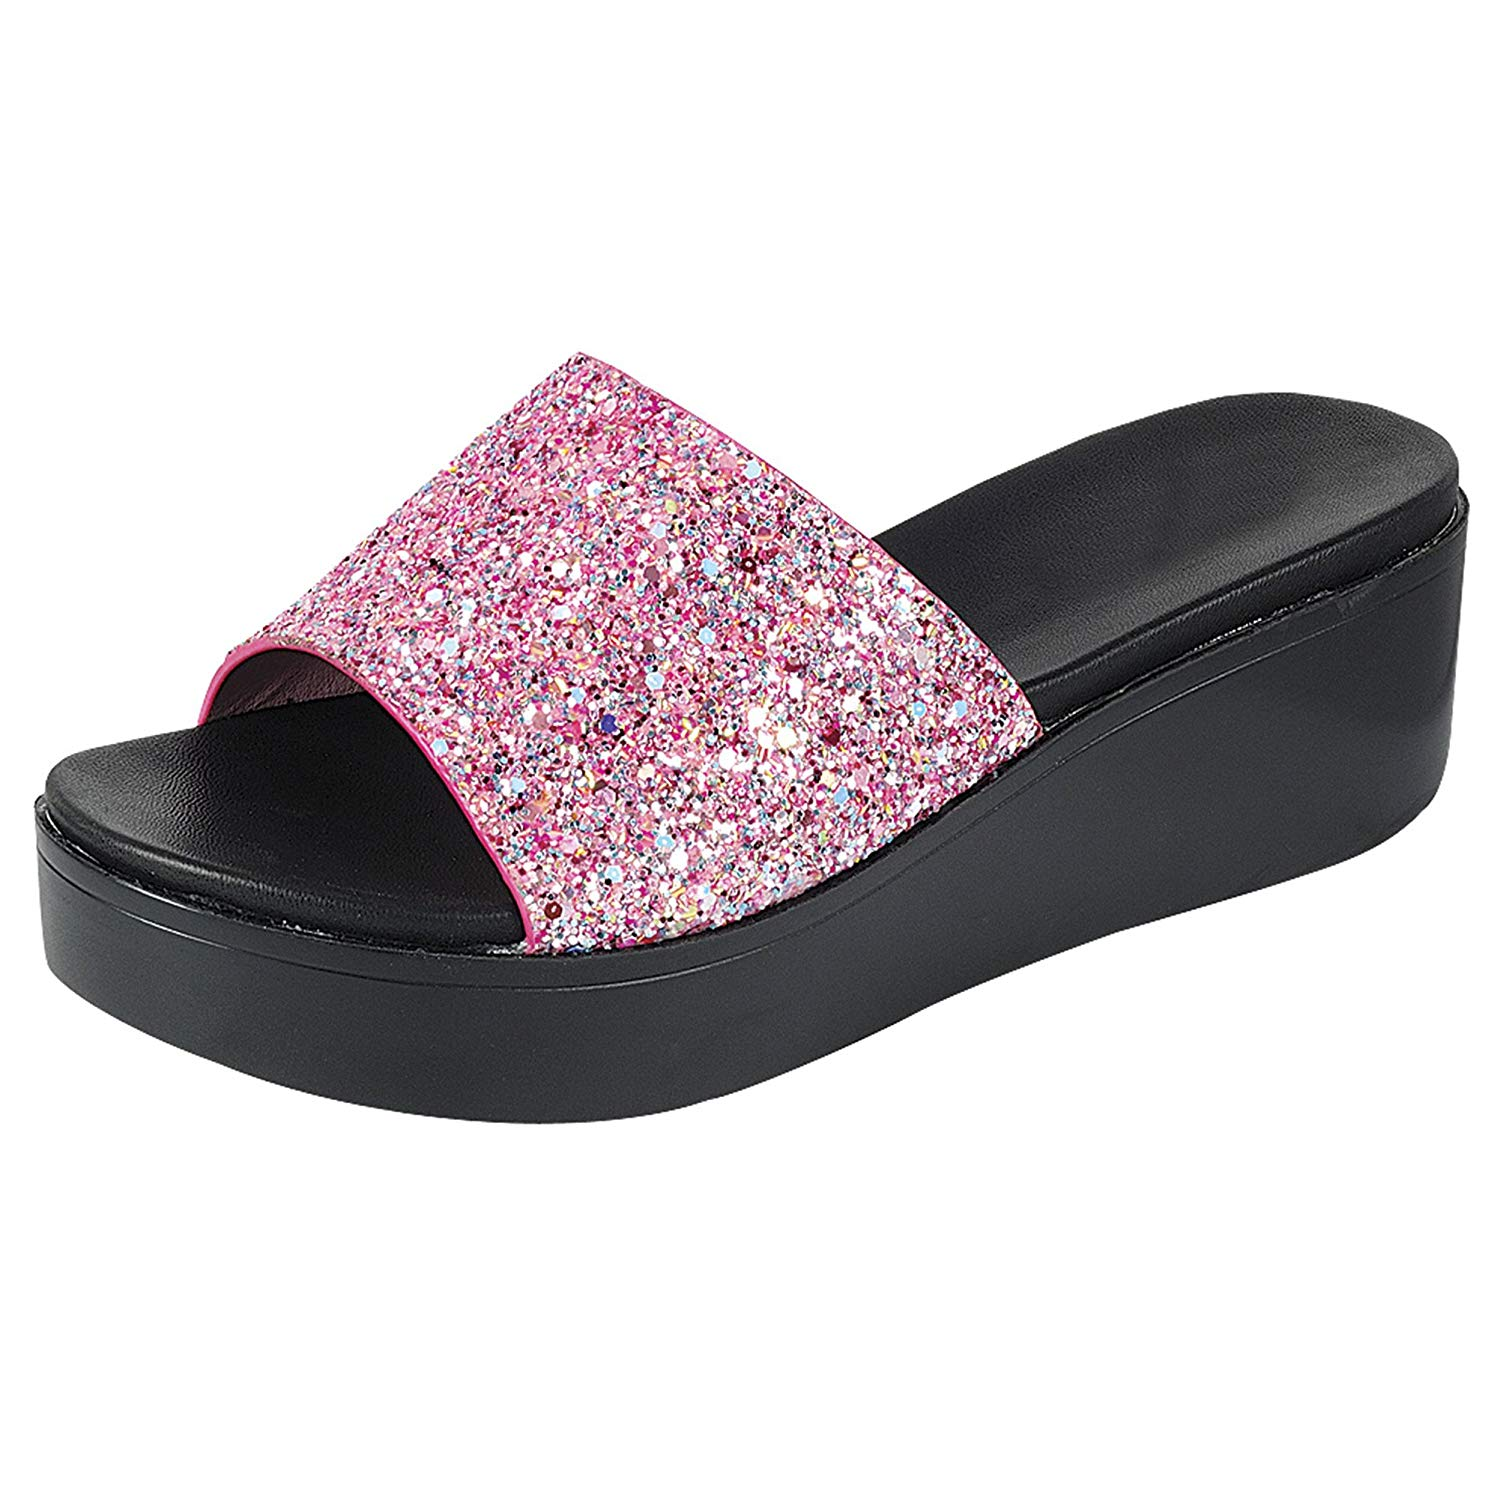 c728ccb88529bd Get Quotations · Trends SNJ Women s Glitter Solid Platform Mid Heel Wedge  Slide Sandal